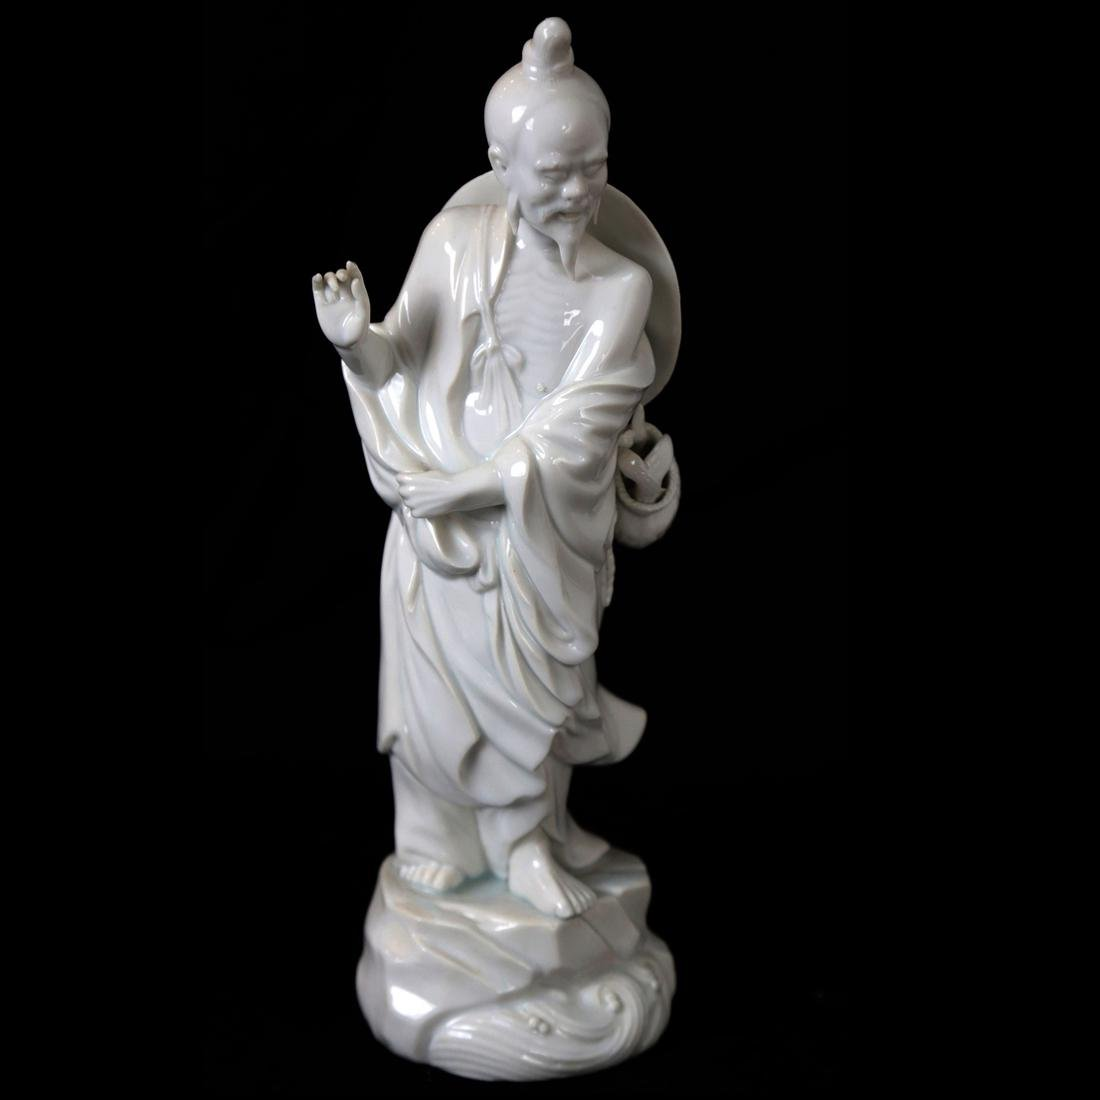 Chinese Blanc de Chine Male Figure